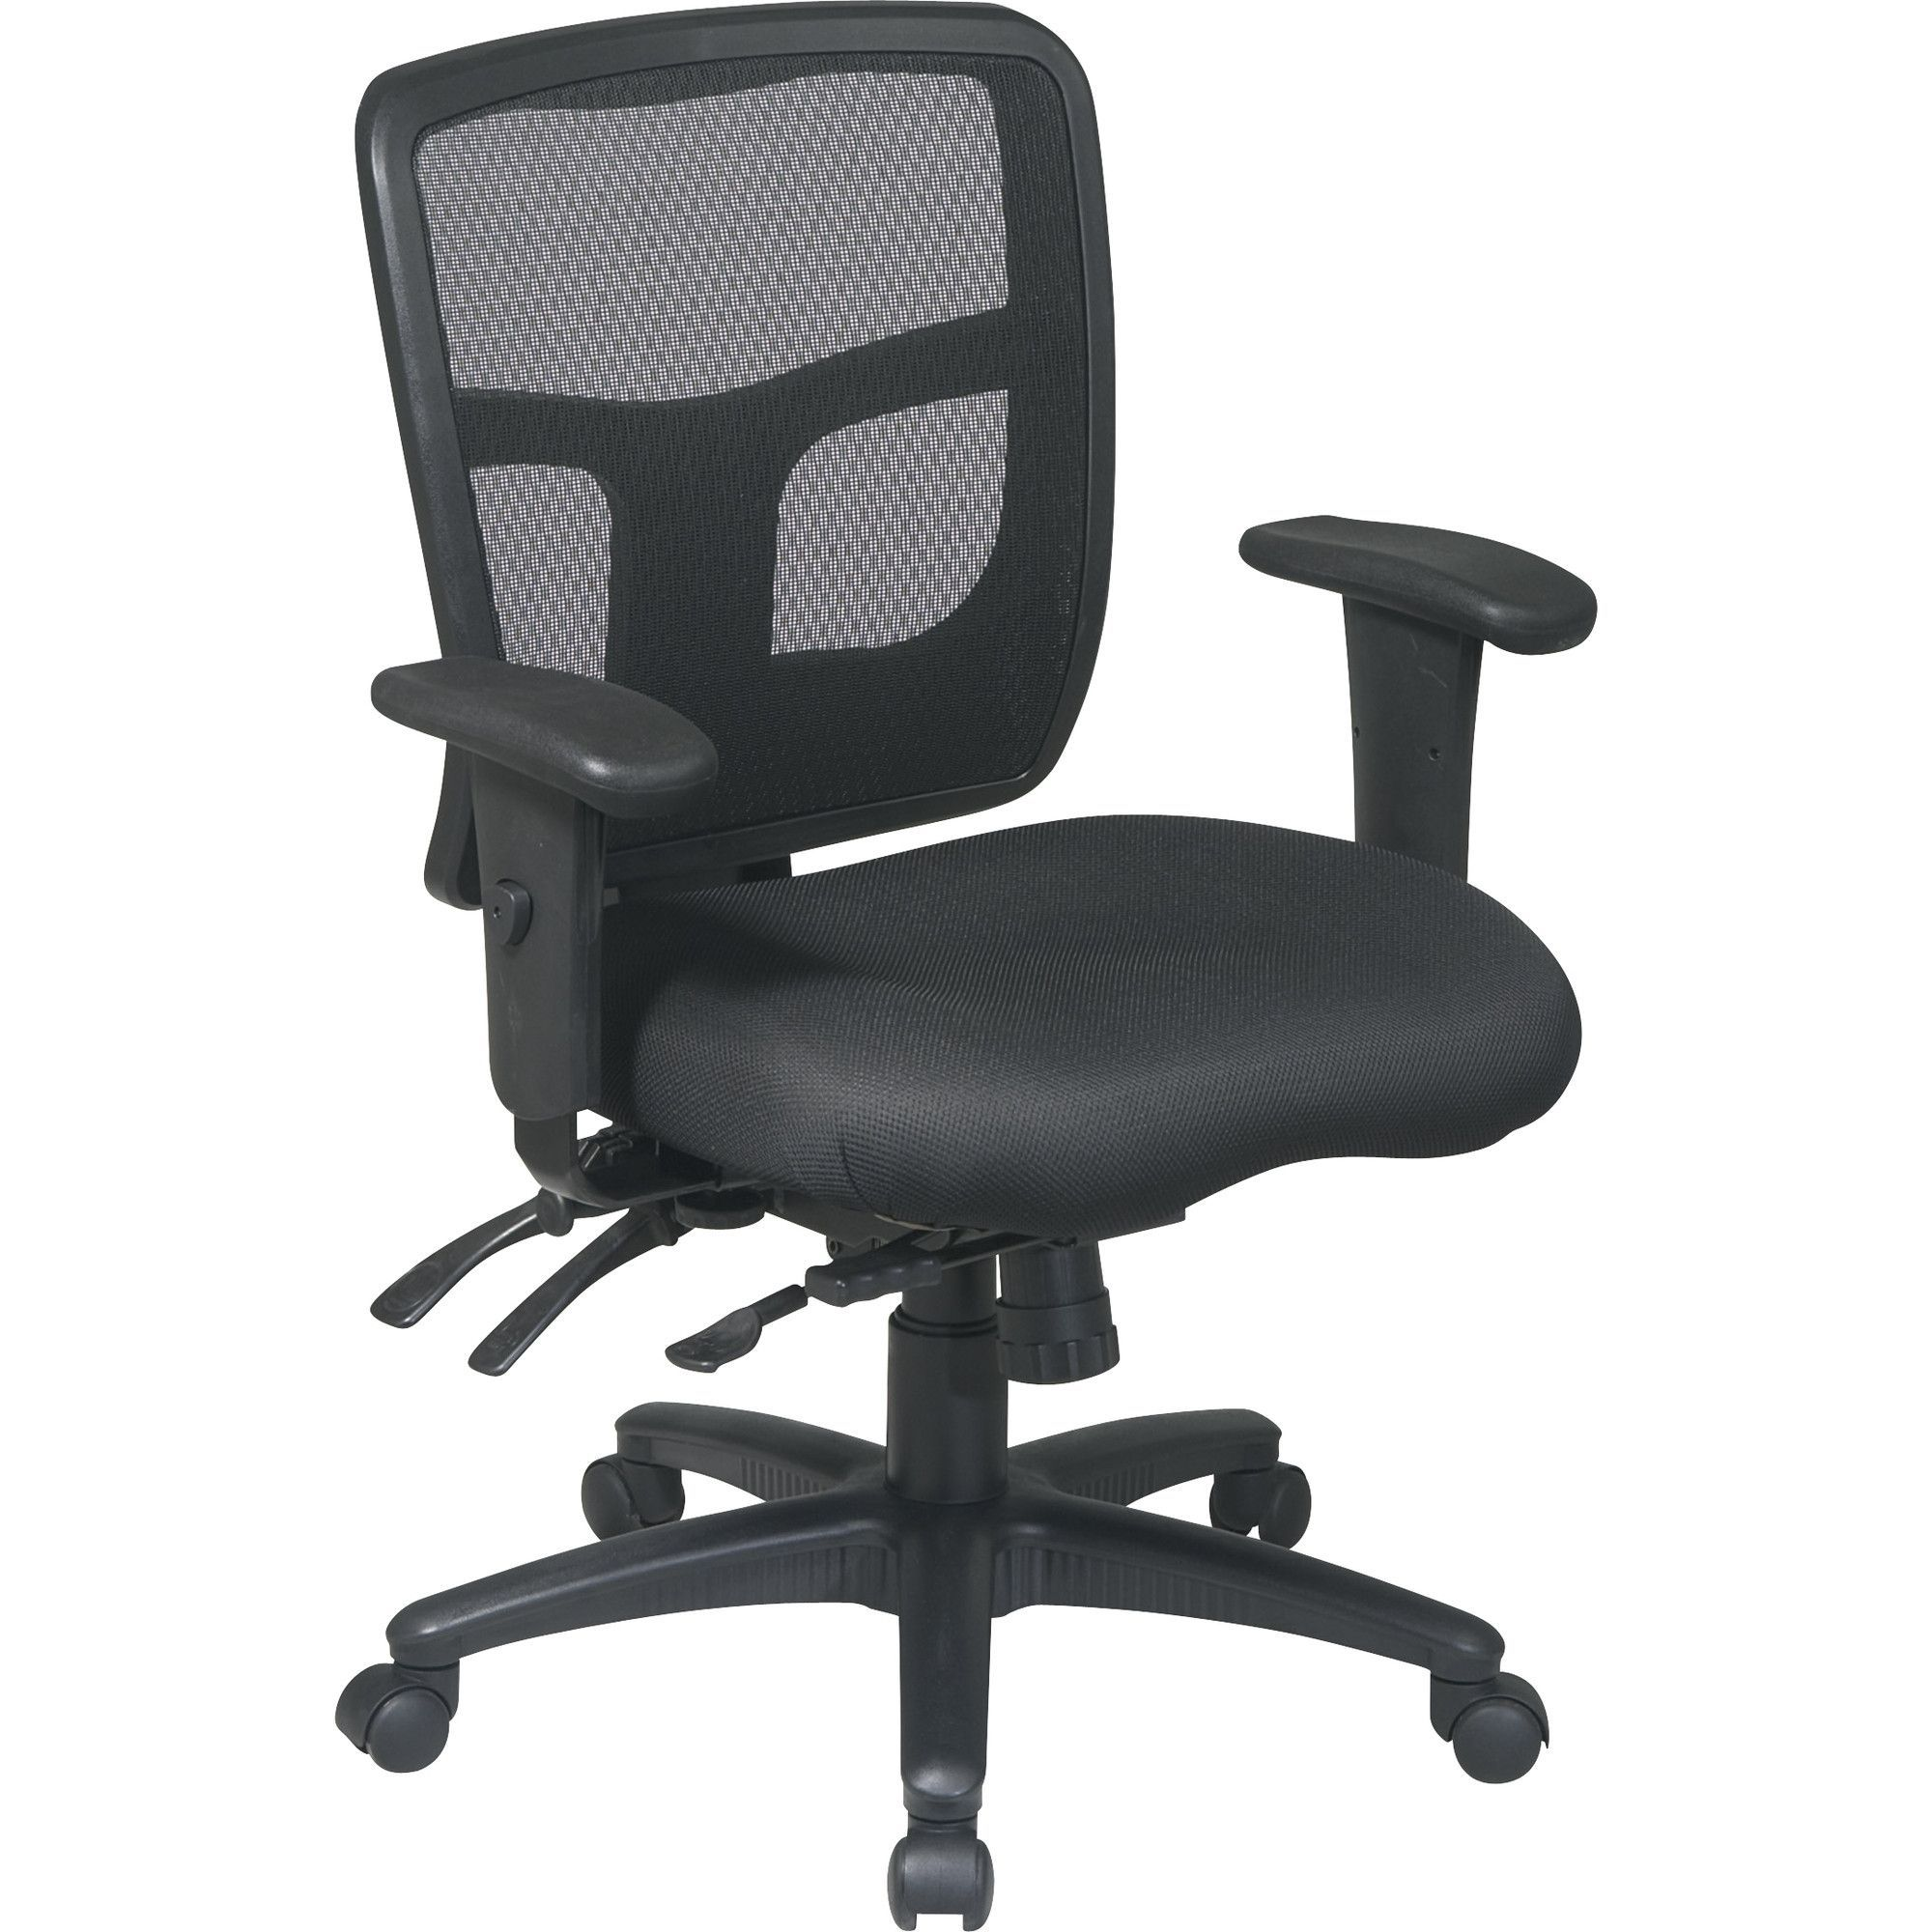 Pro Line II Deluxe Adjustable Air Grid Back Ergonomic fice Chair